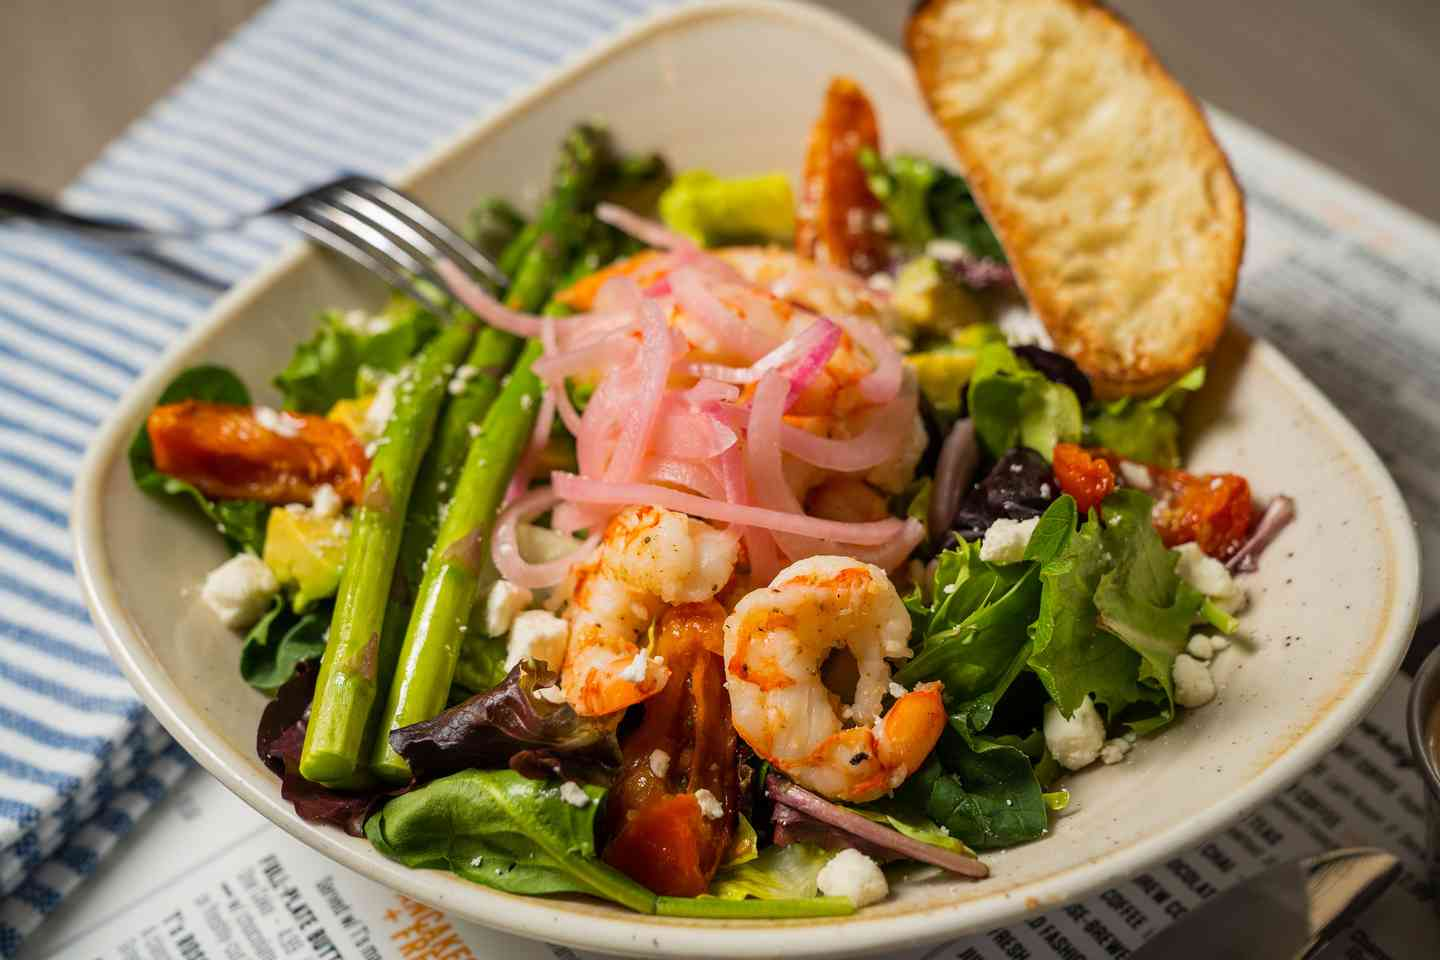 ARGENTINE GRILLED SHRIMP, BACON + AVOCADO SALAD